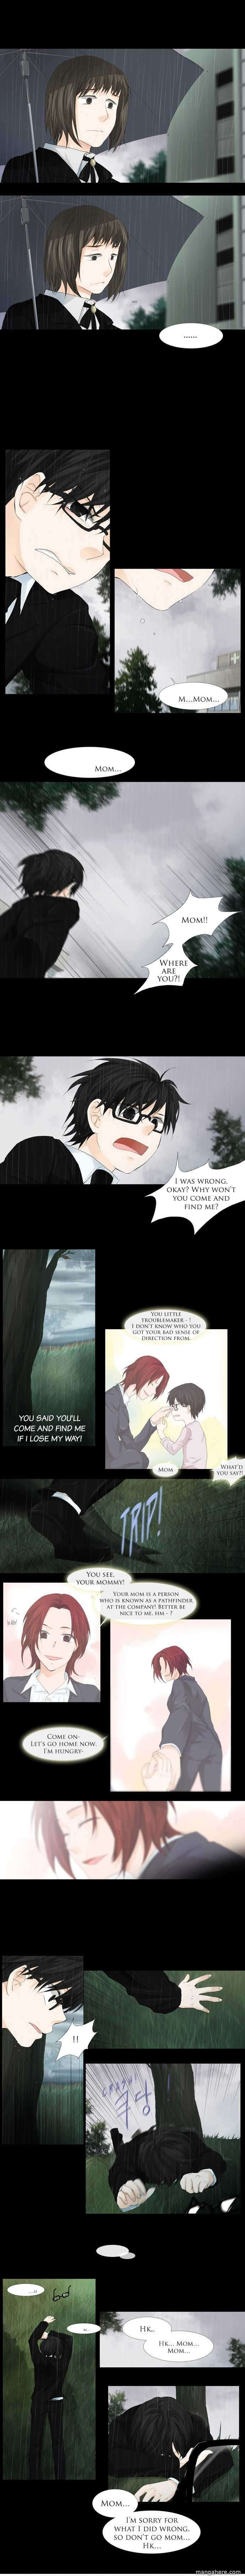 Come Spring 0 Page 2